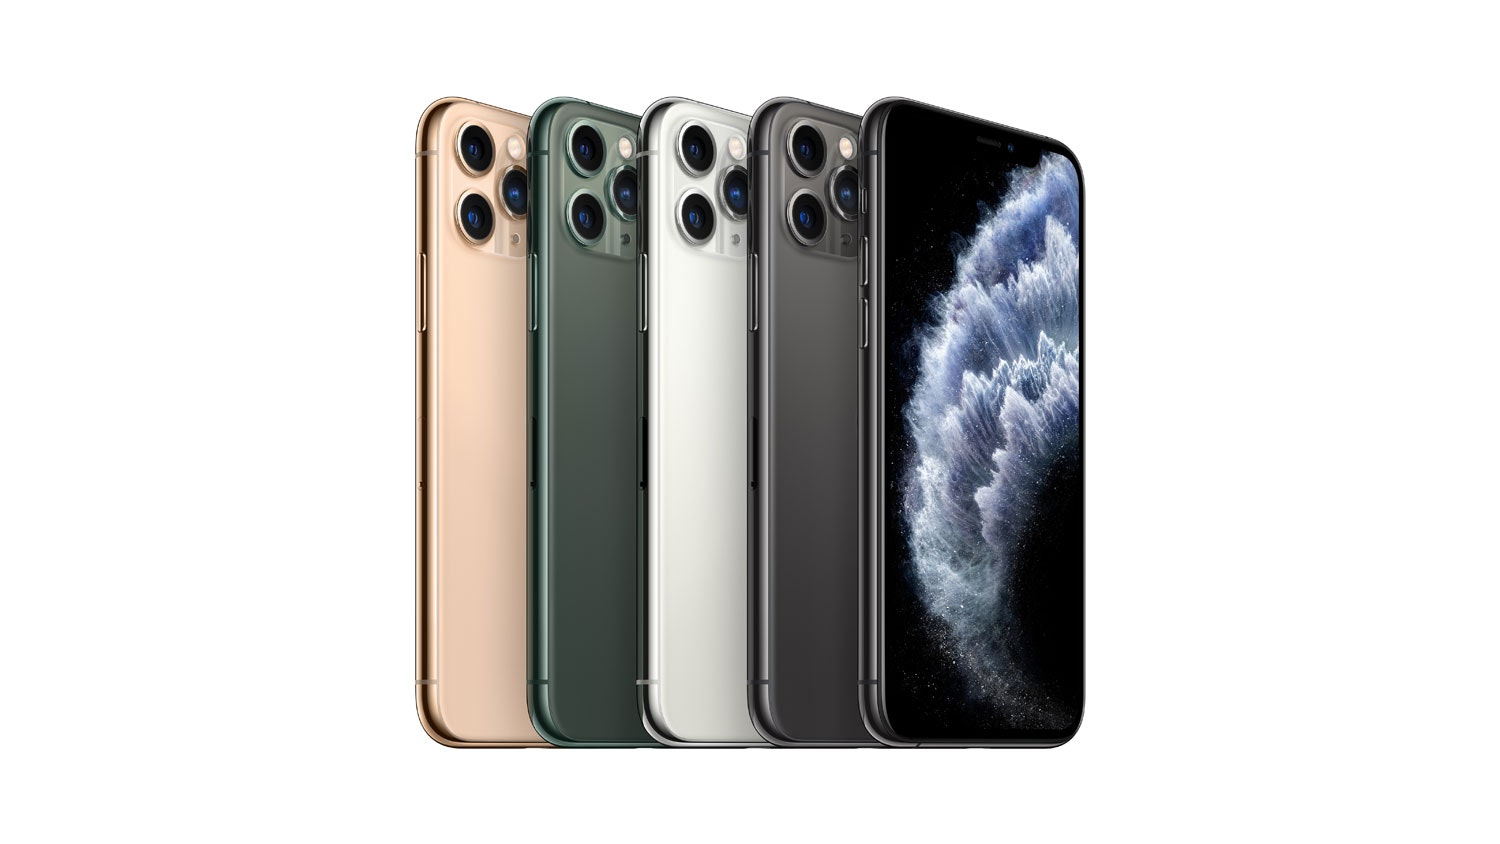 iPhone 11 Pro Max 256GB on Spark , Midnight Green